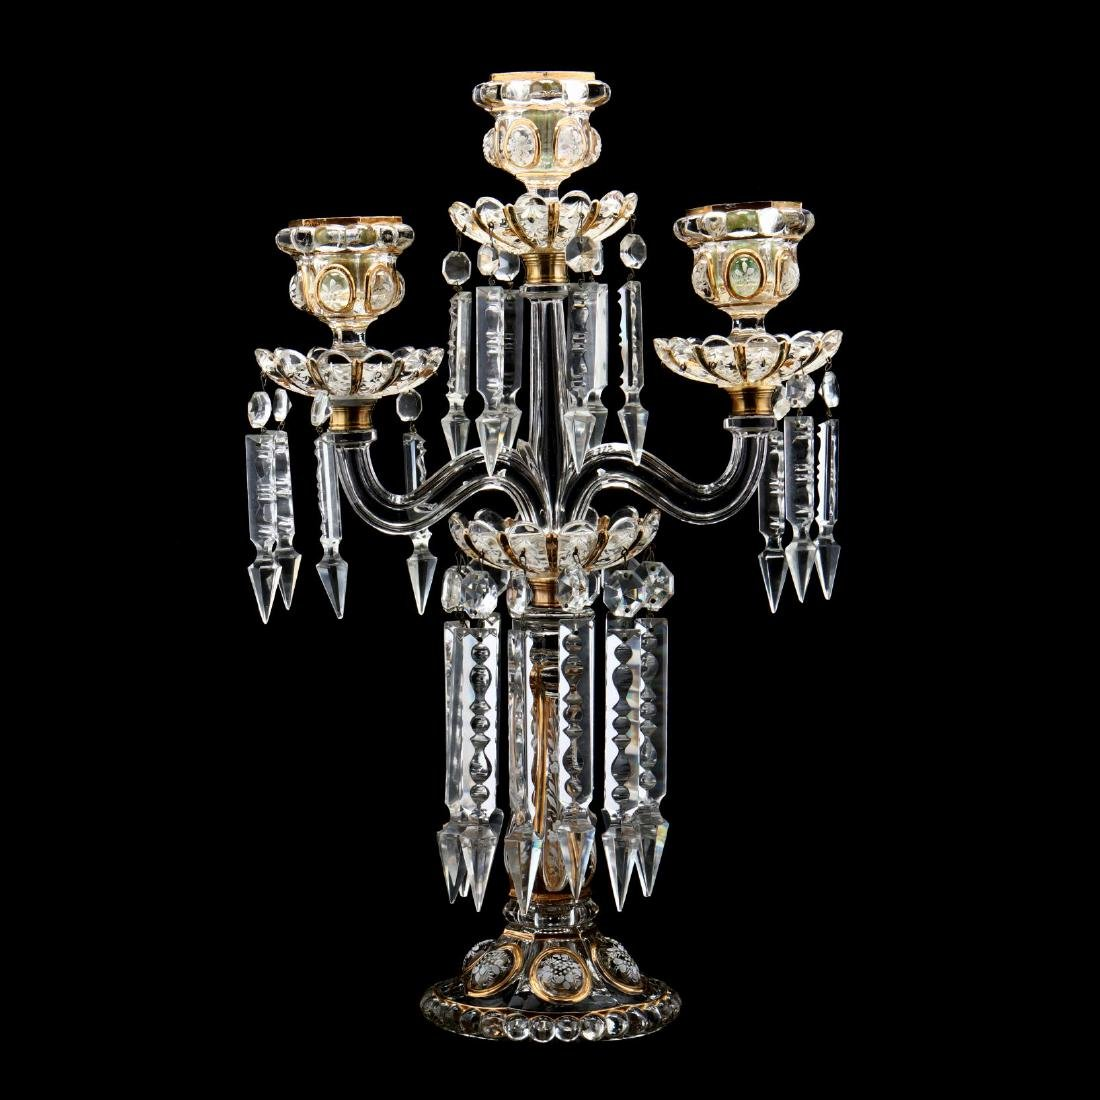 Antique Baccarat Enameled and Gilt Candelabra